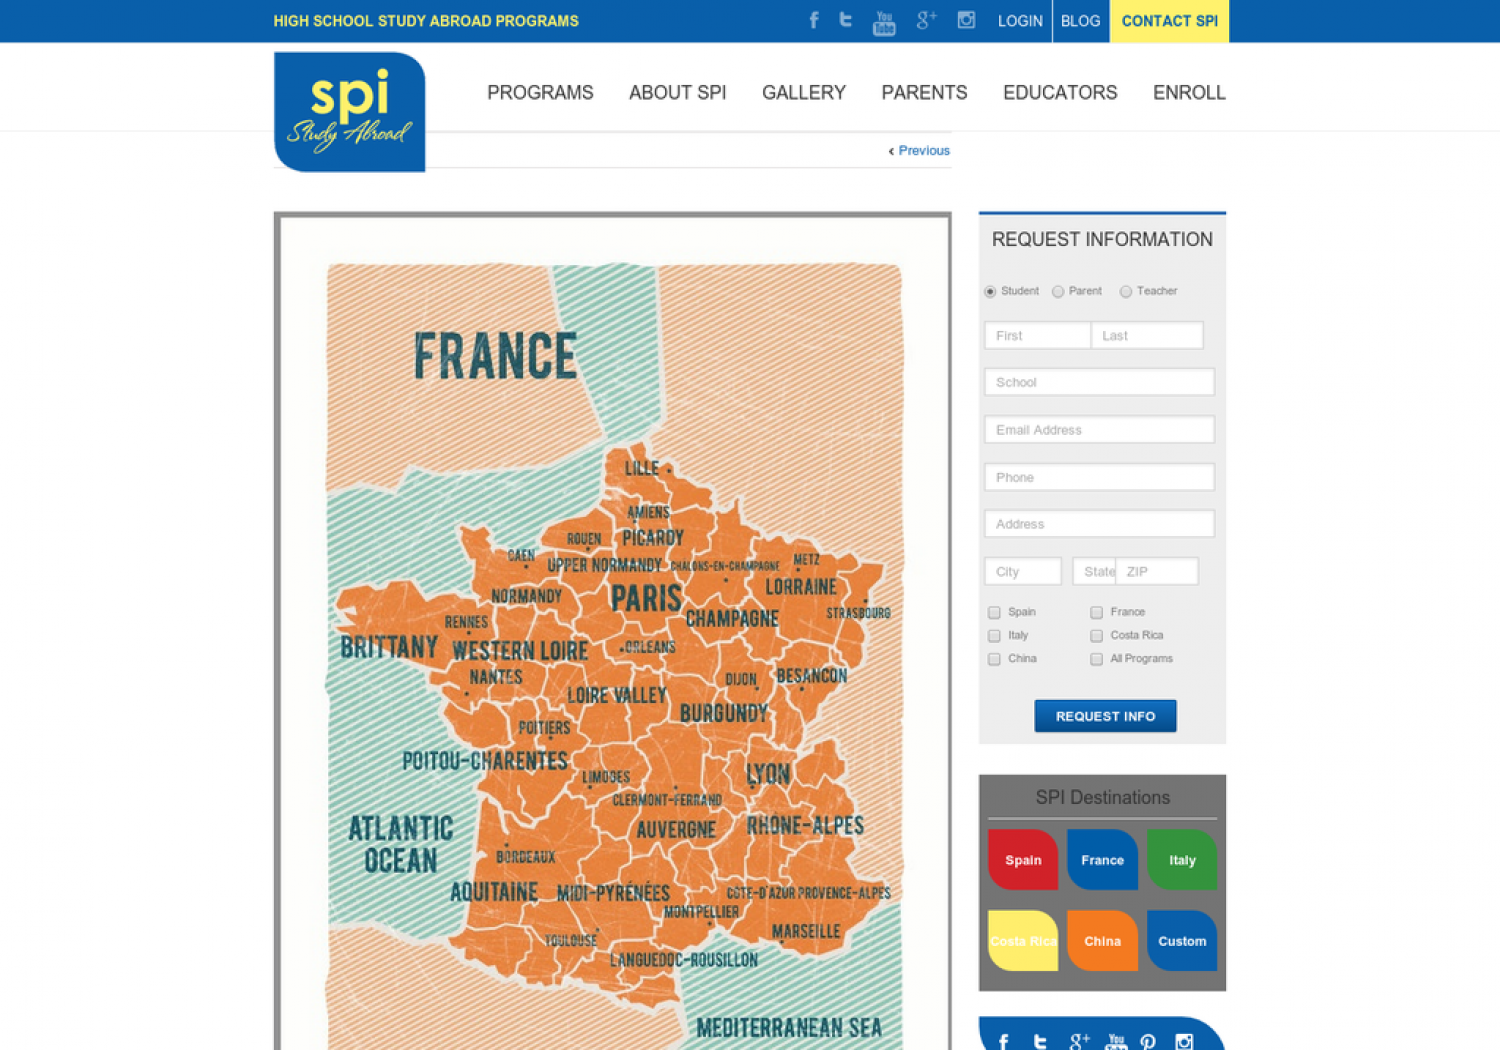 5 Undiscovered Cities in France You'll Want to Visit Immediately  Infographic